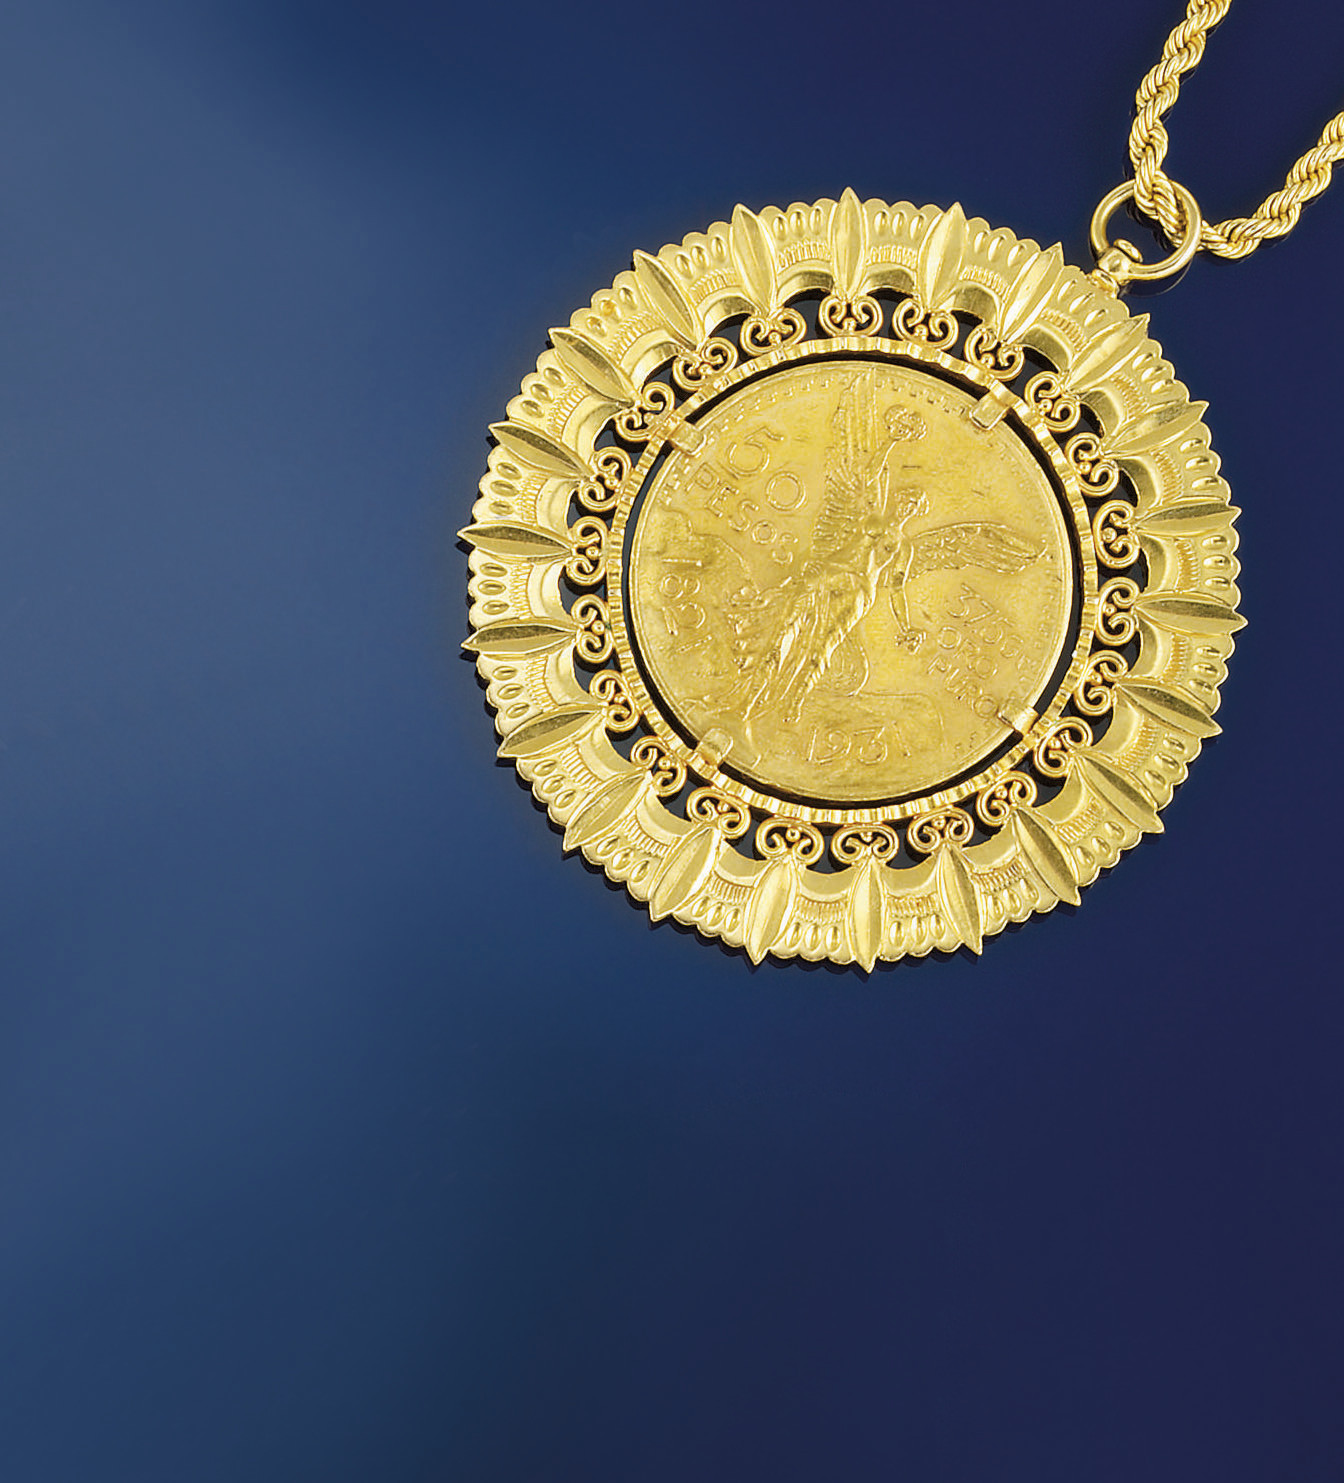 A coin pendant necklace